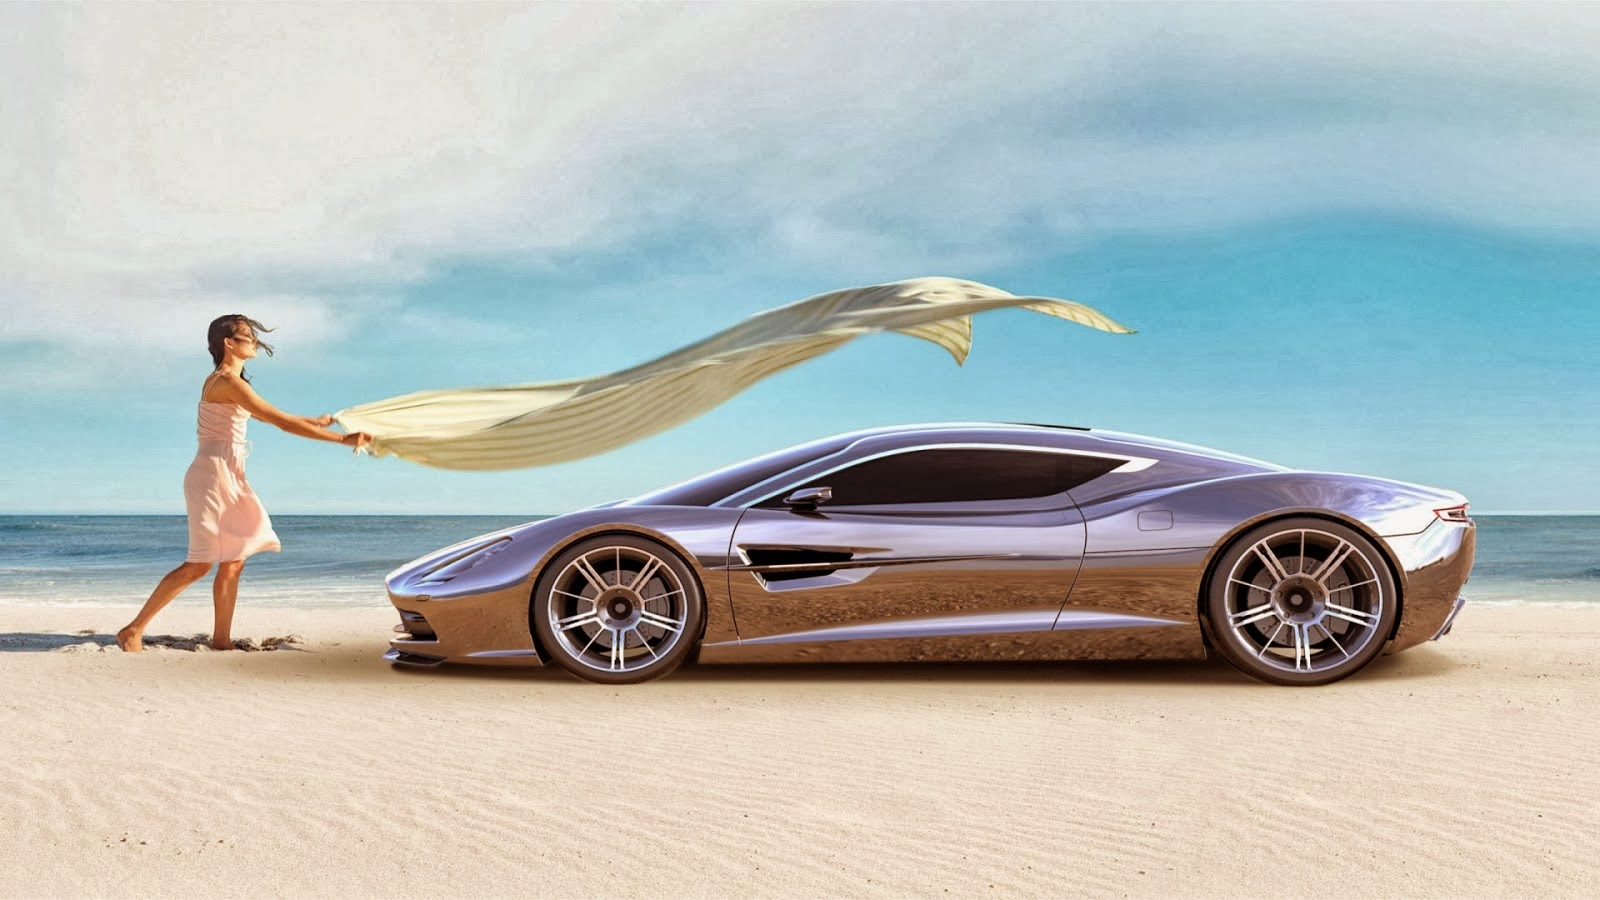 All hot informations download aston martin dbc cars hd wallpapers 1080p - Car hd wallpapers 1080p download ...